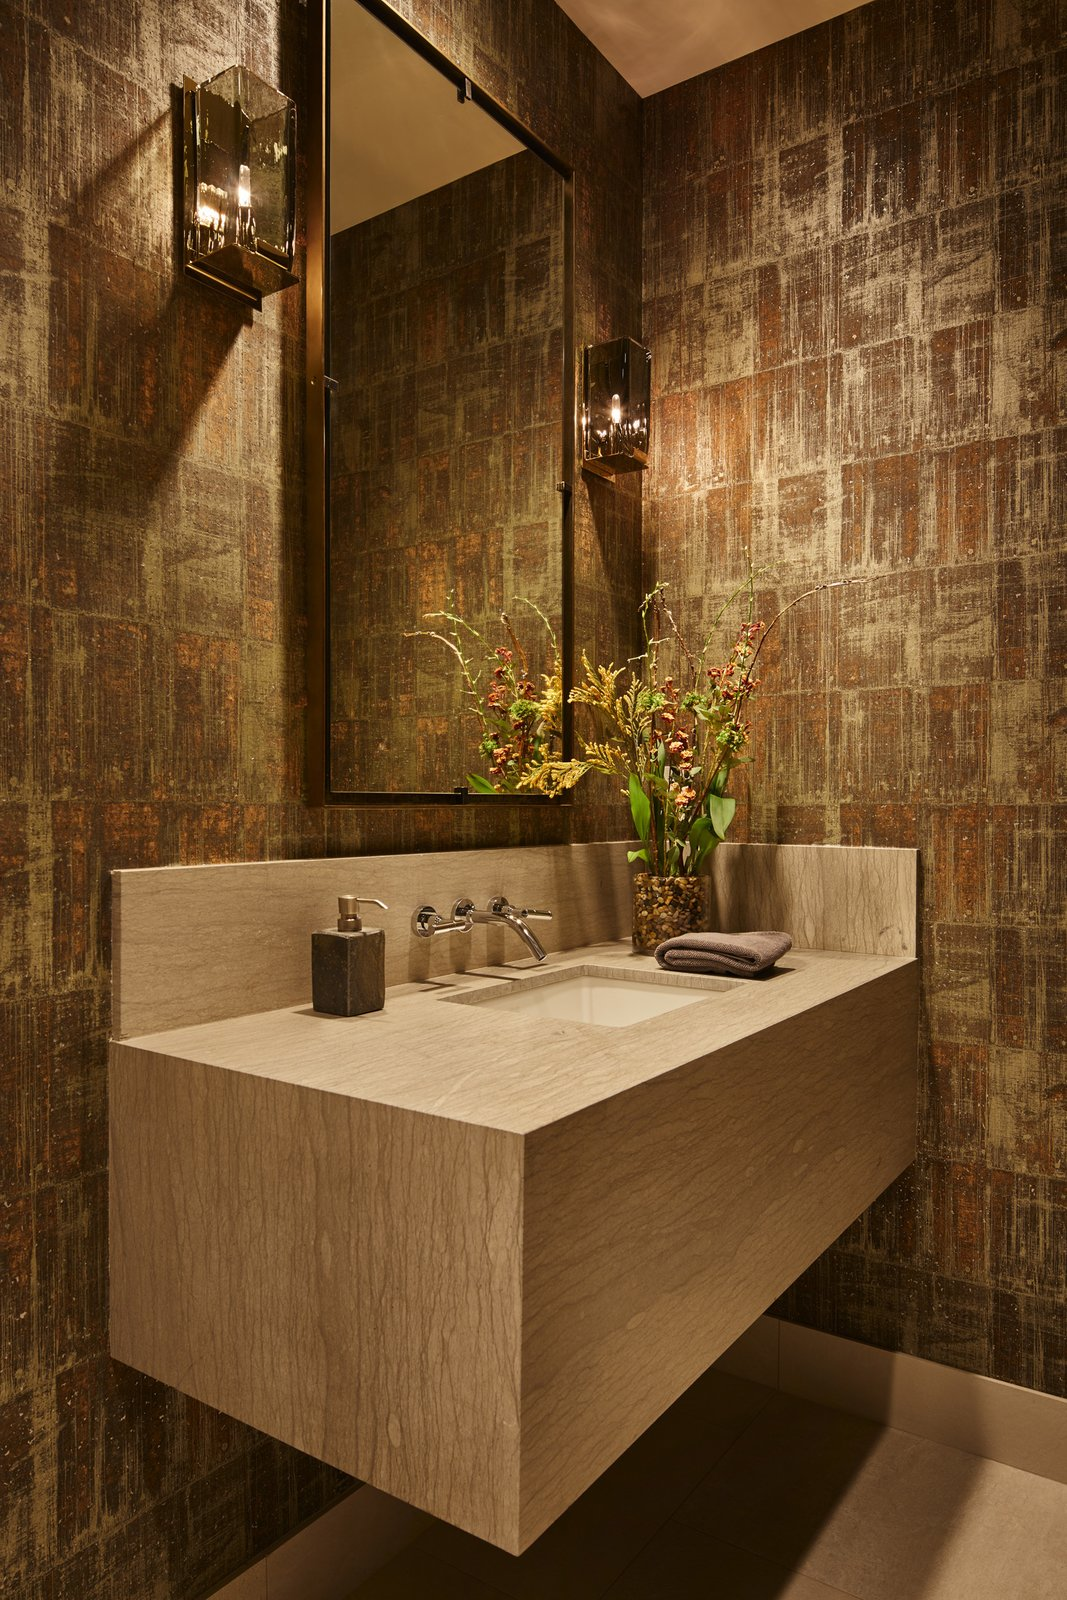 Bath Room, Porcelain Tile Floor, Undermount Sink, Wall Lighting, and Marble Counter Guest bathroom.  Bent Tree Residence